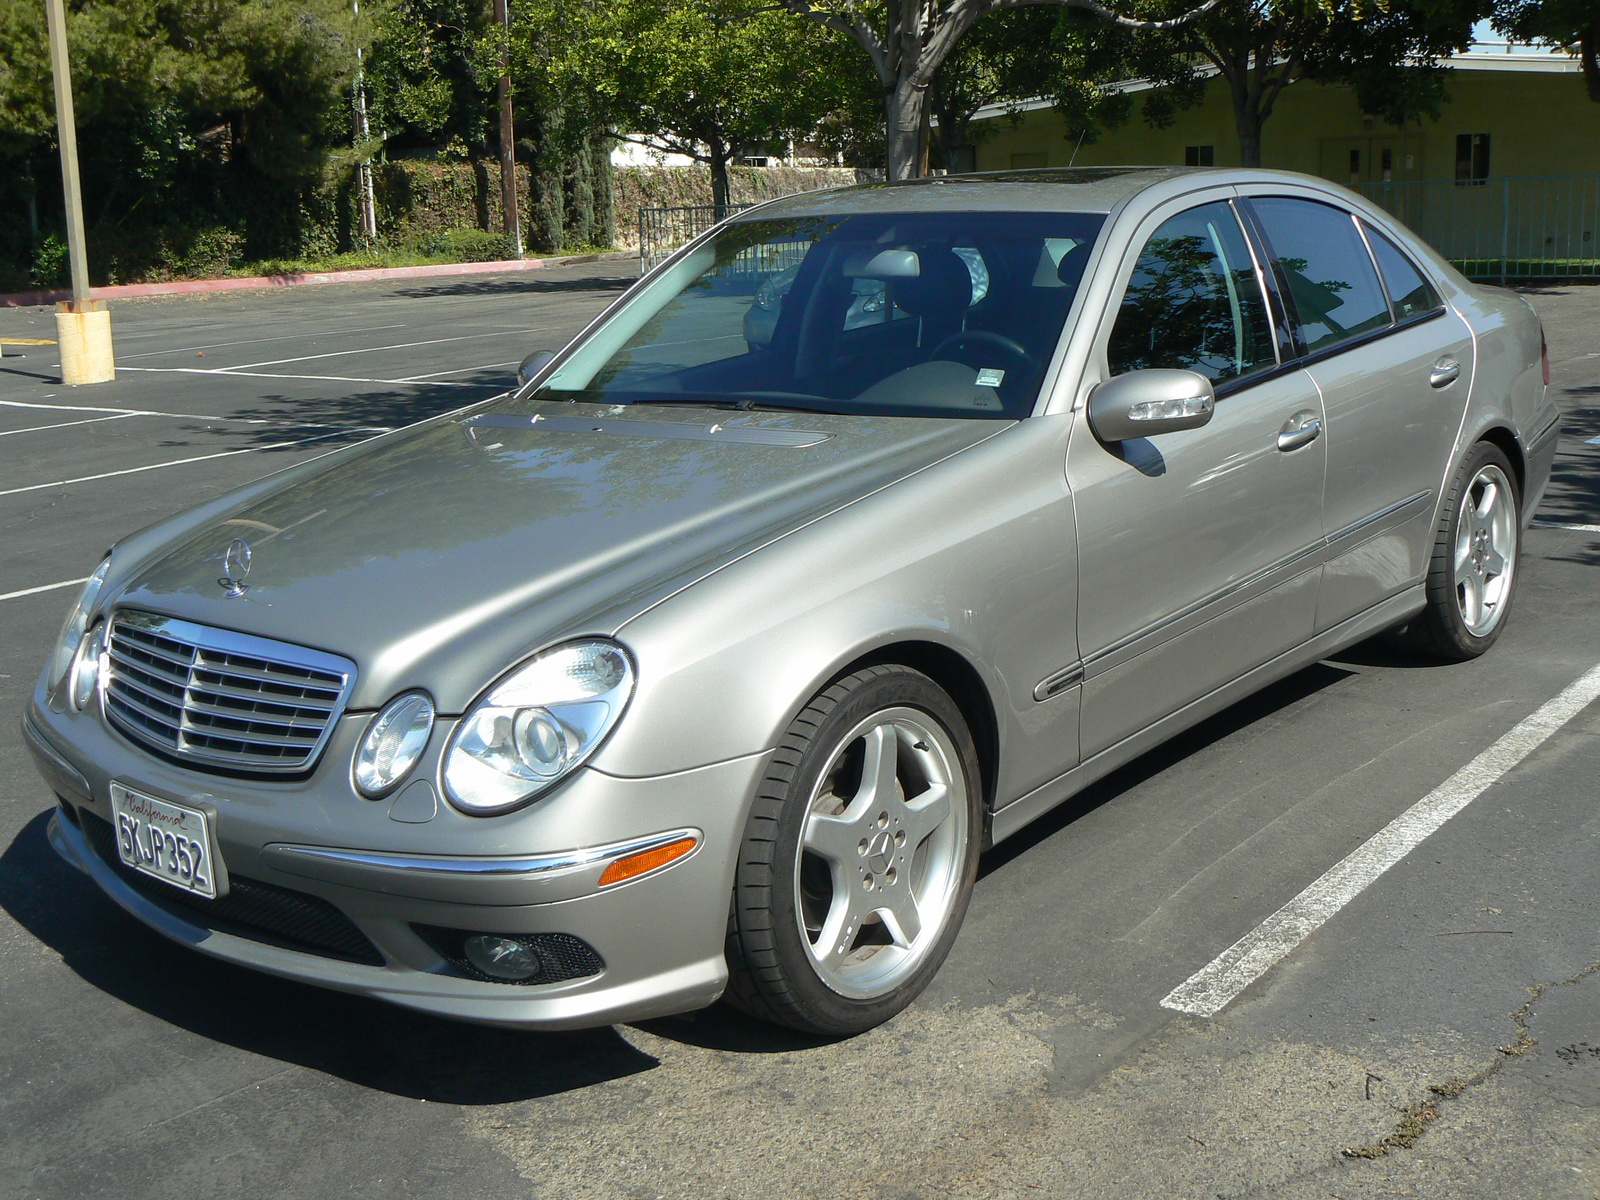 2005 mercedes benz e class pictures cargurus for 2004 mercedes benz e320 review